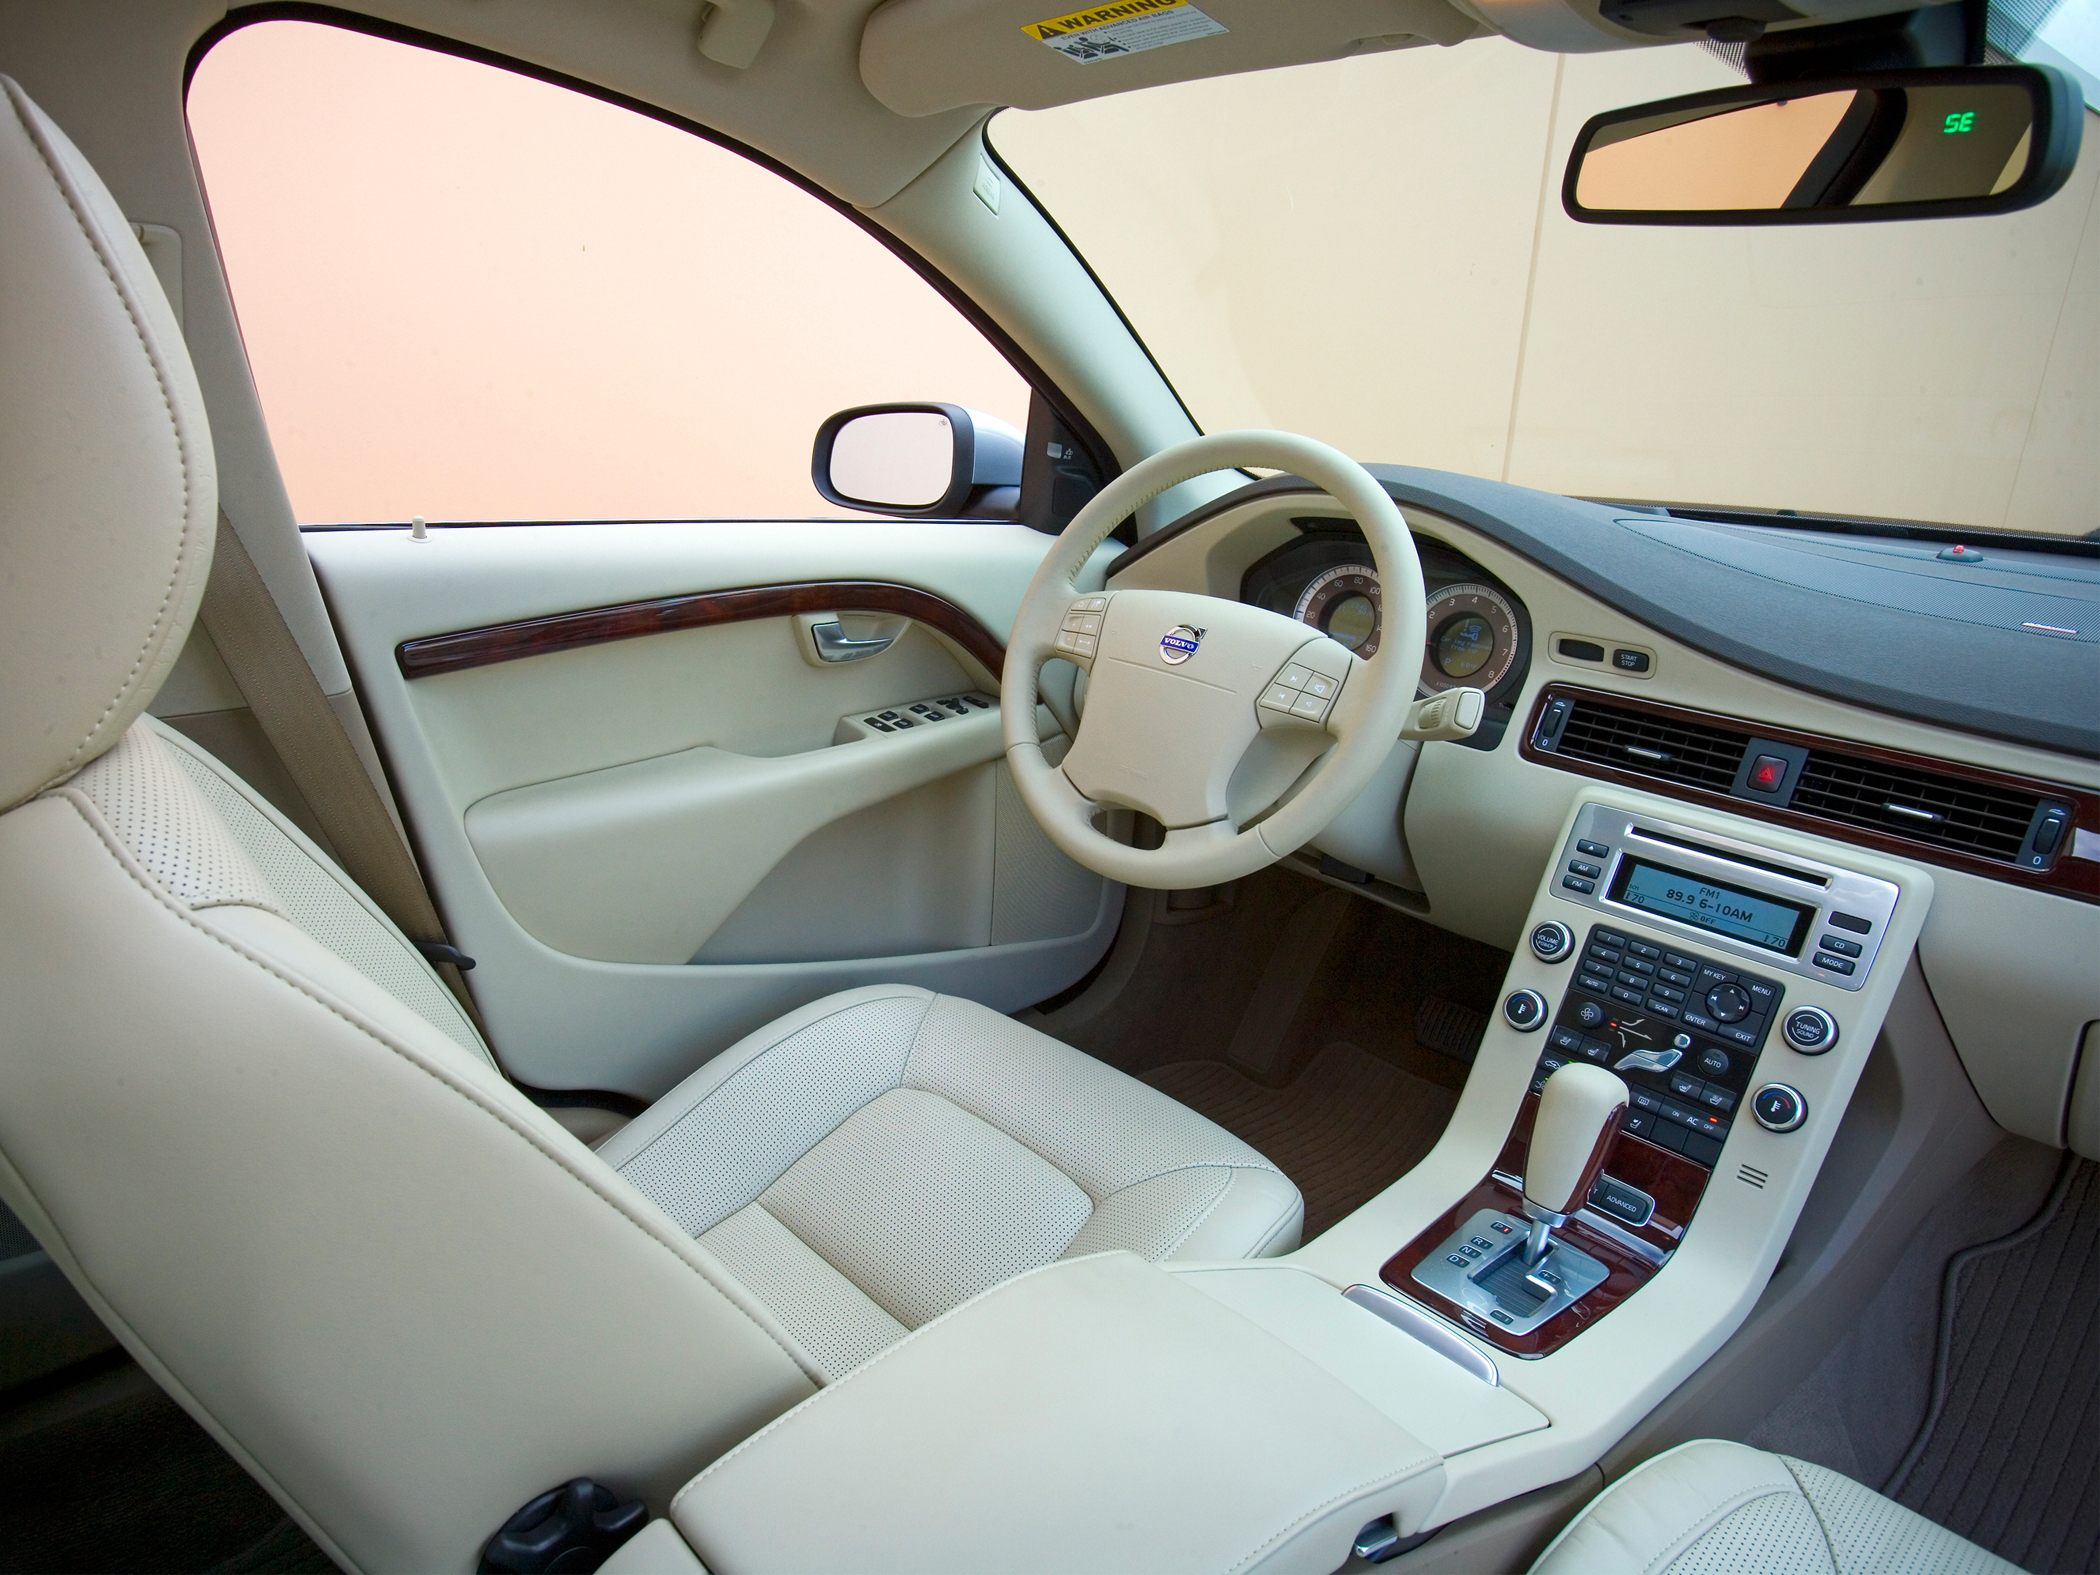 2011 Volvo S80 ii – pictures, information and specs - Auto ...